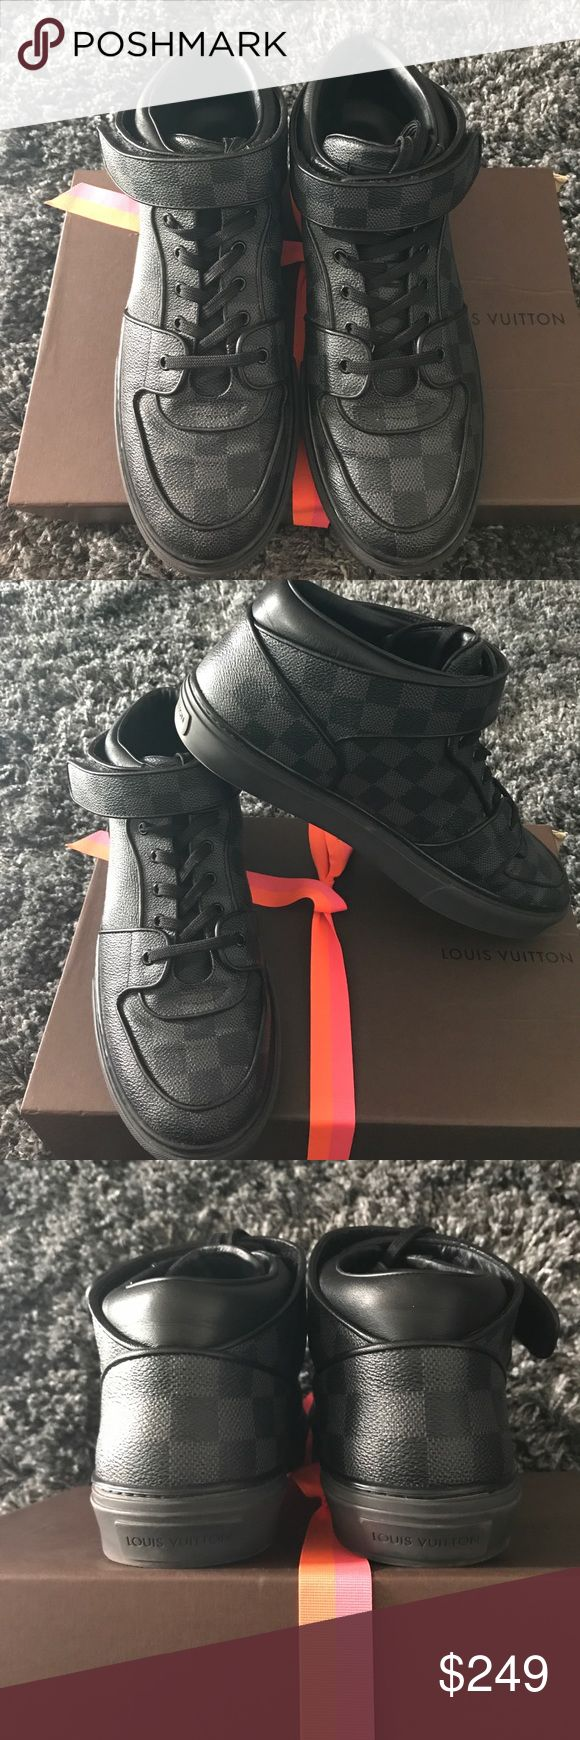 Louis Vuitton men shoes Louis Vuitton men's 10 shoe, great condition, gentle warn and handled with care. Louis Vuitton Shoes Sneakers